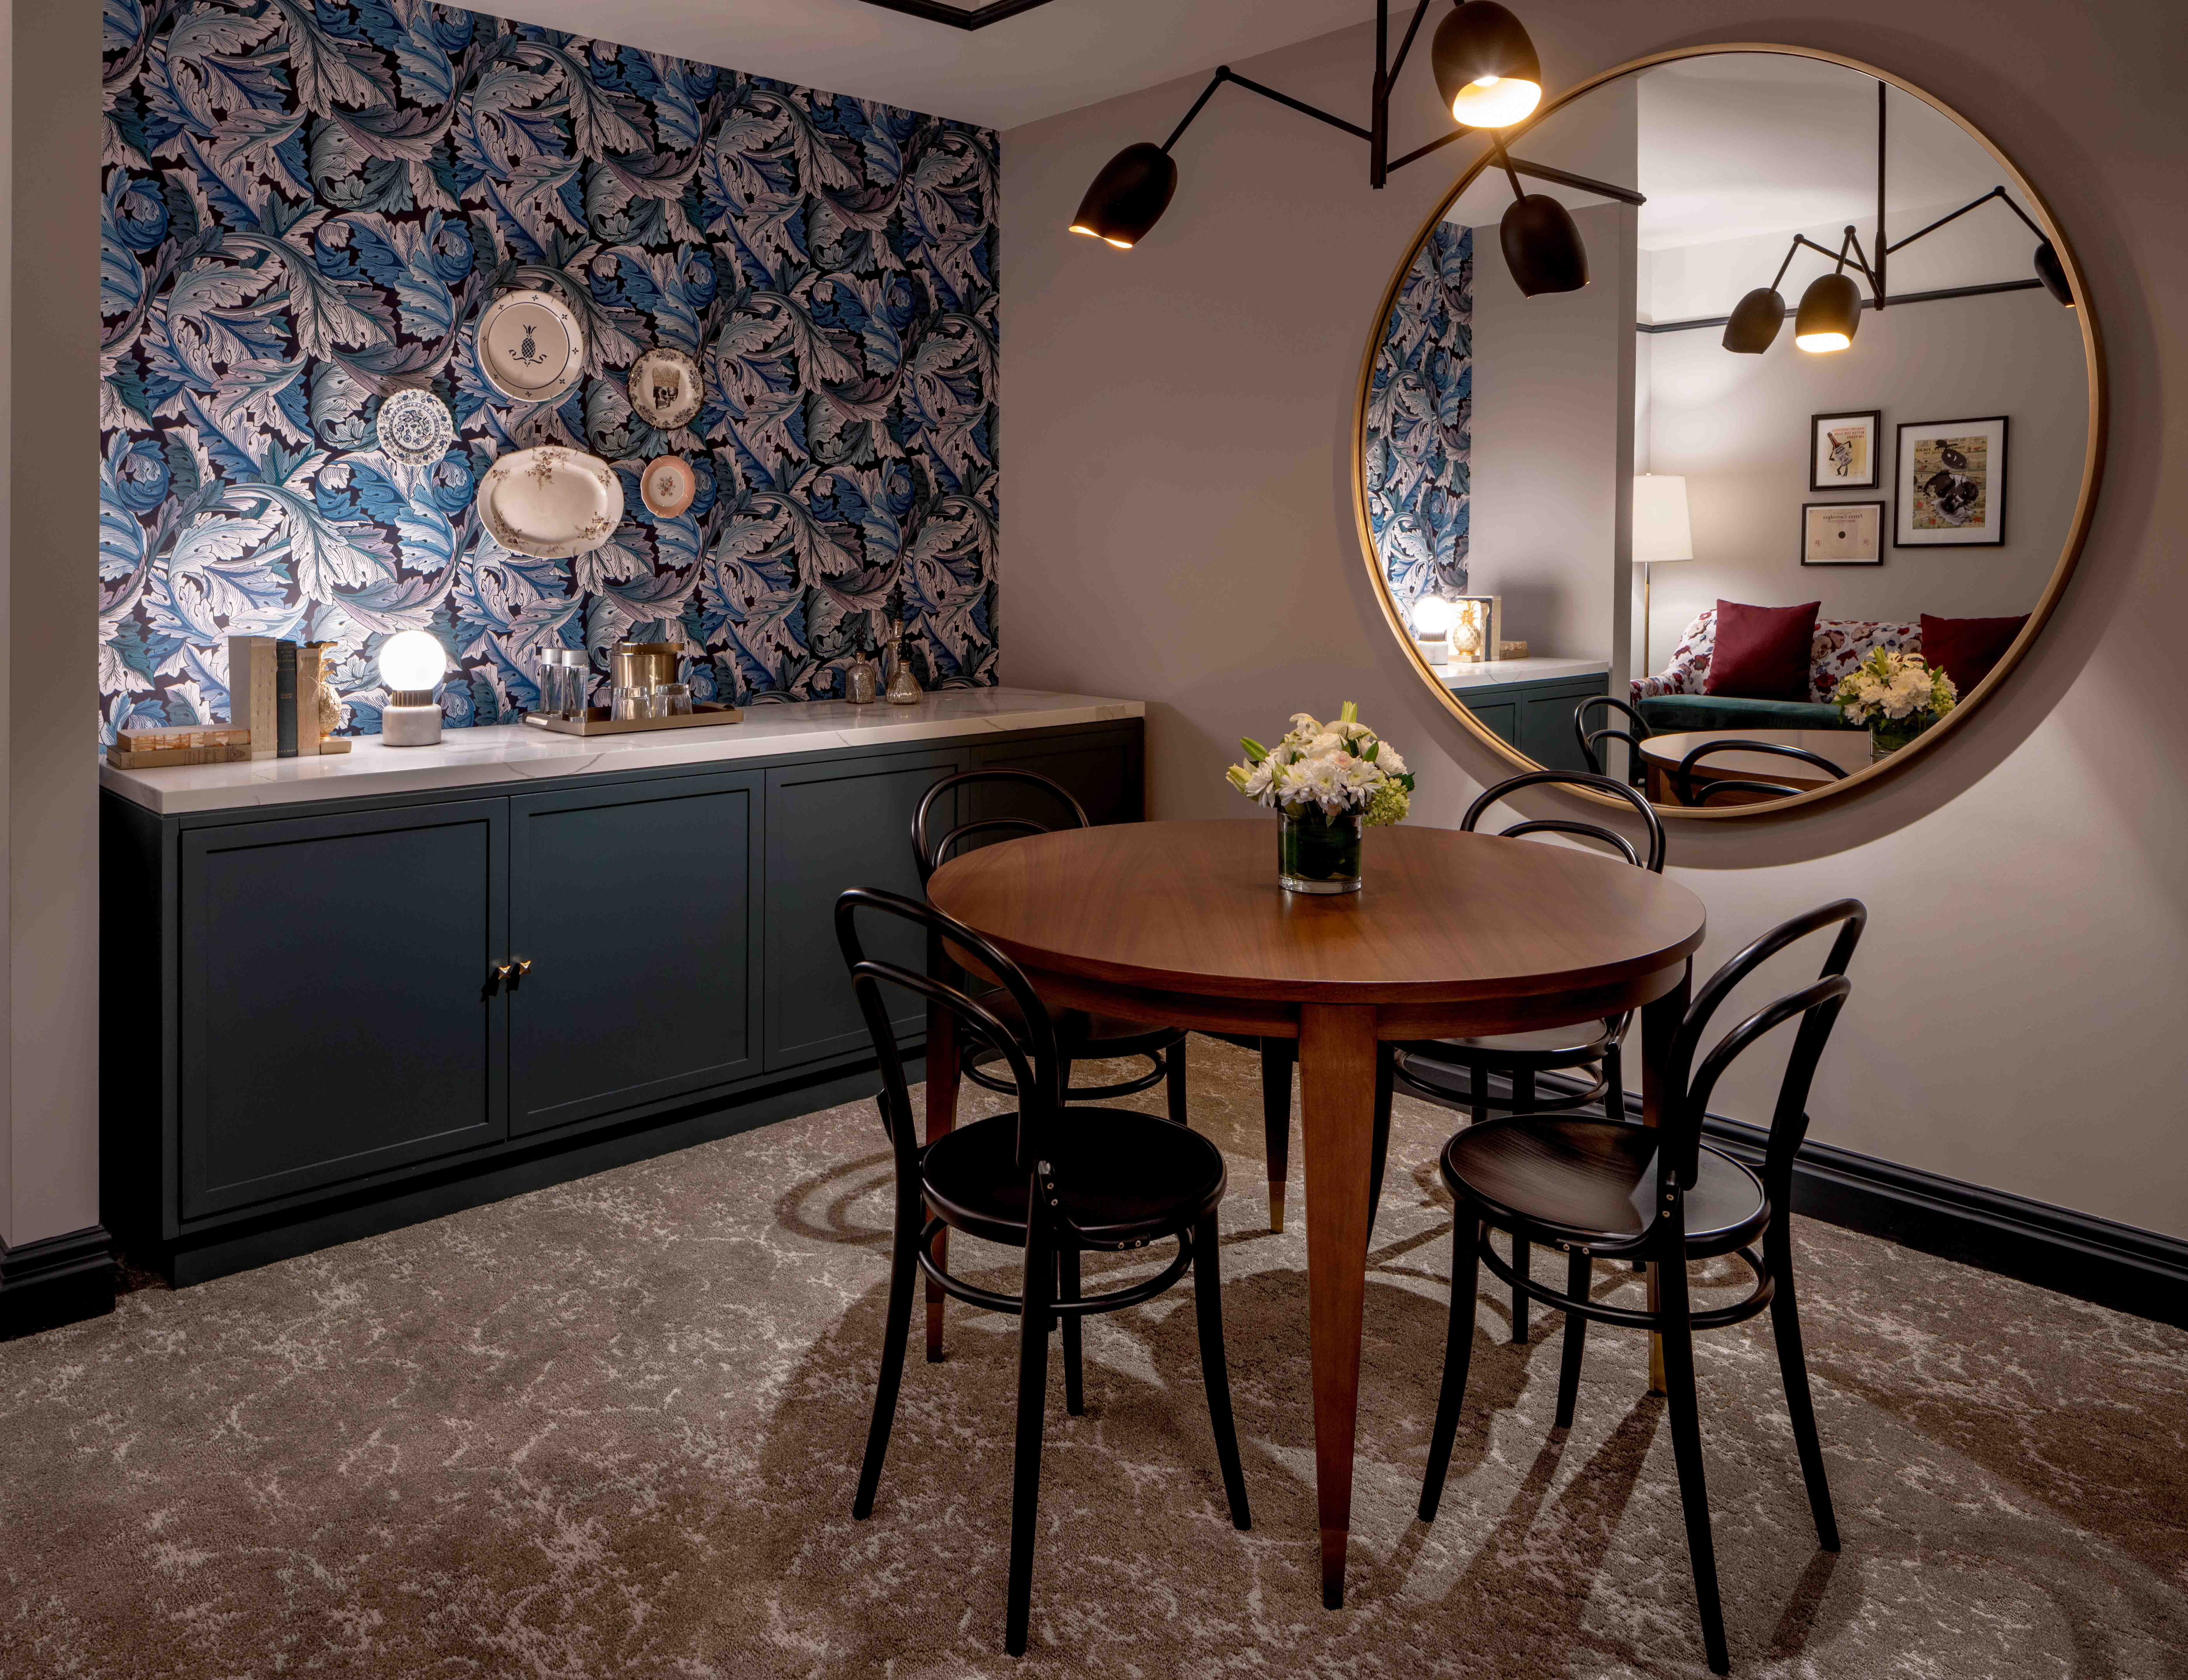 The-Eliza-Jane-Publishers-Suite-Dining-Table-MFRZD